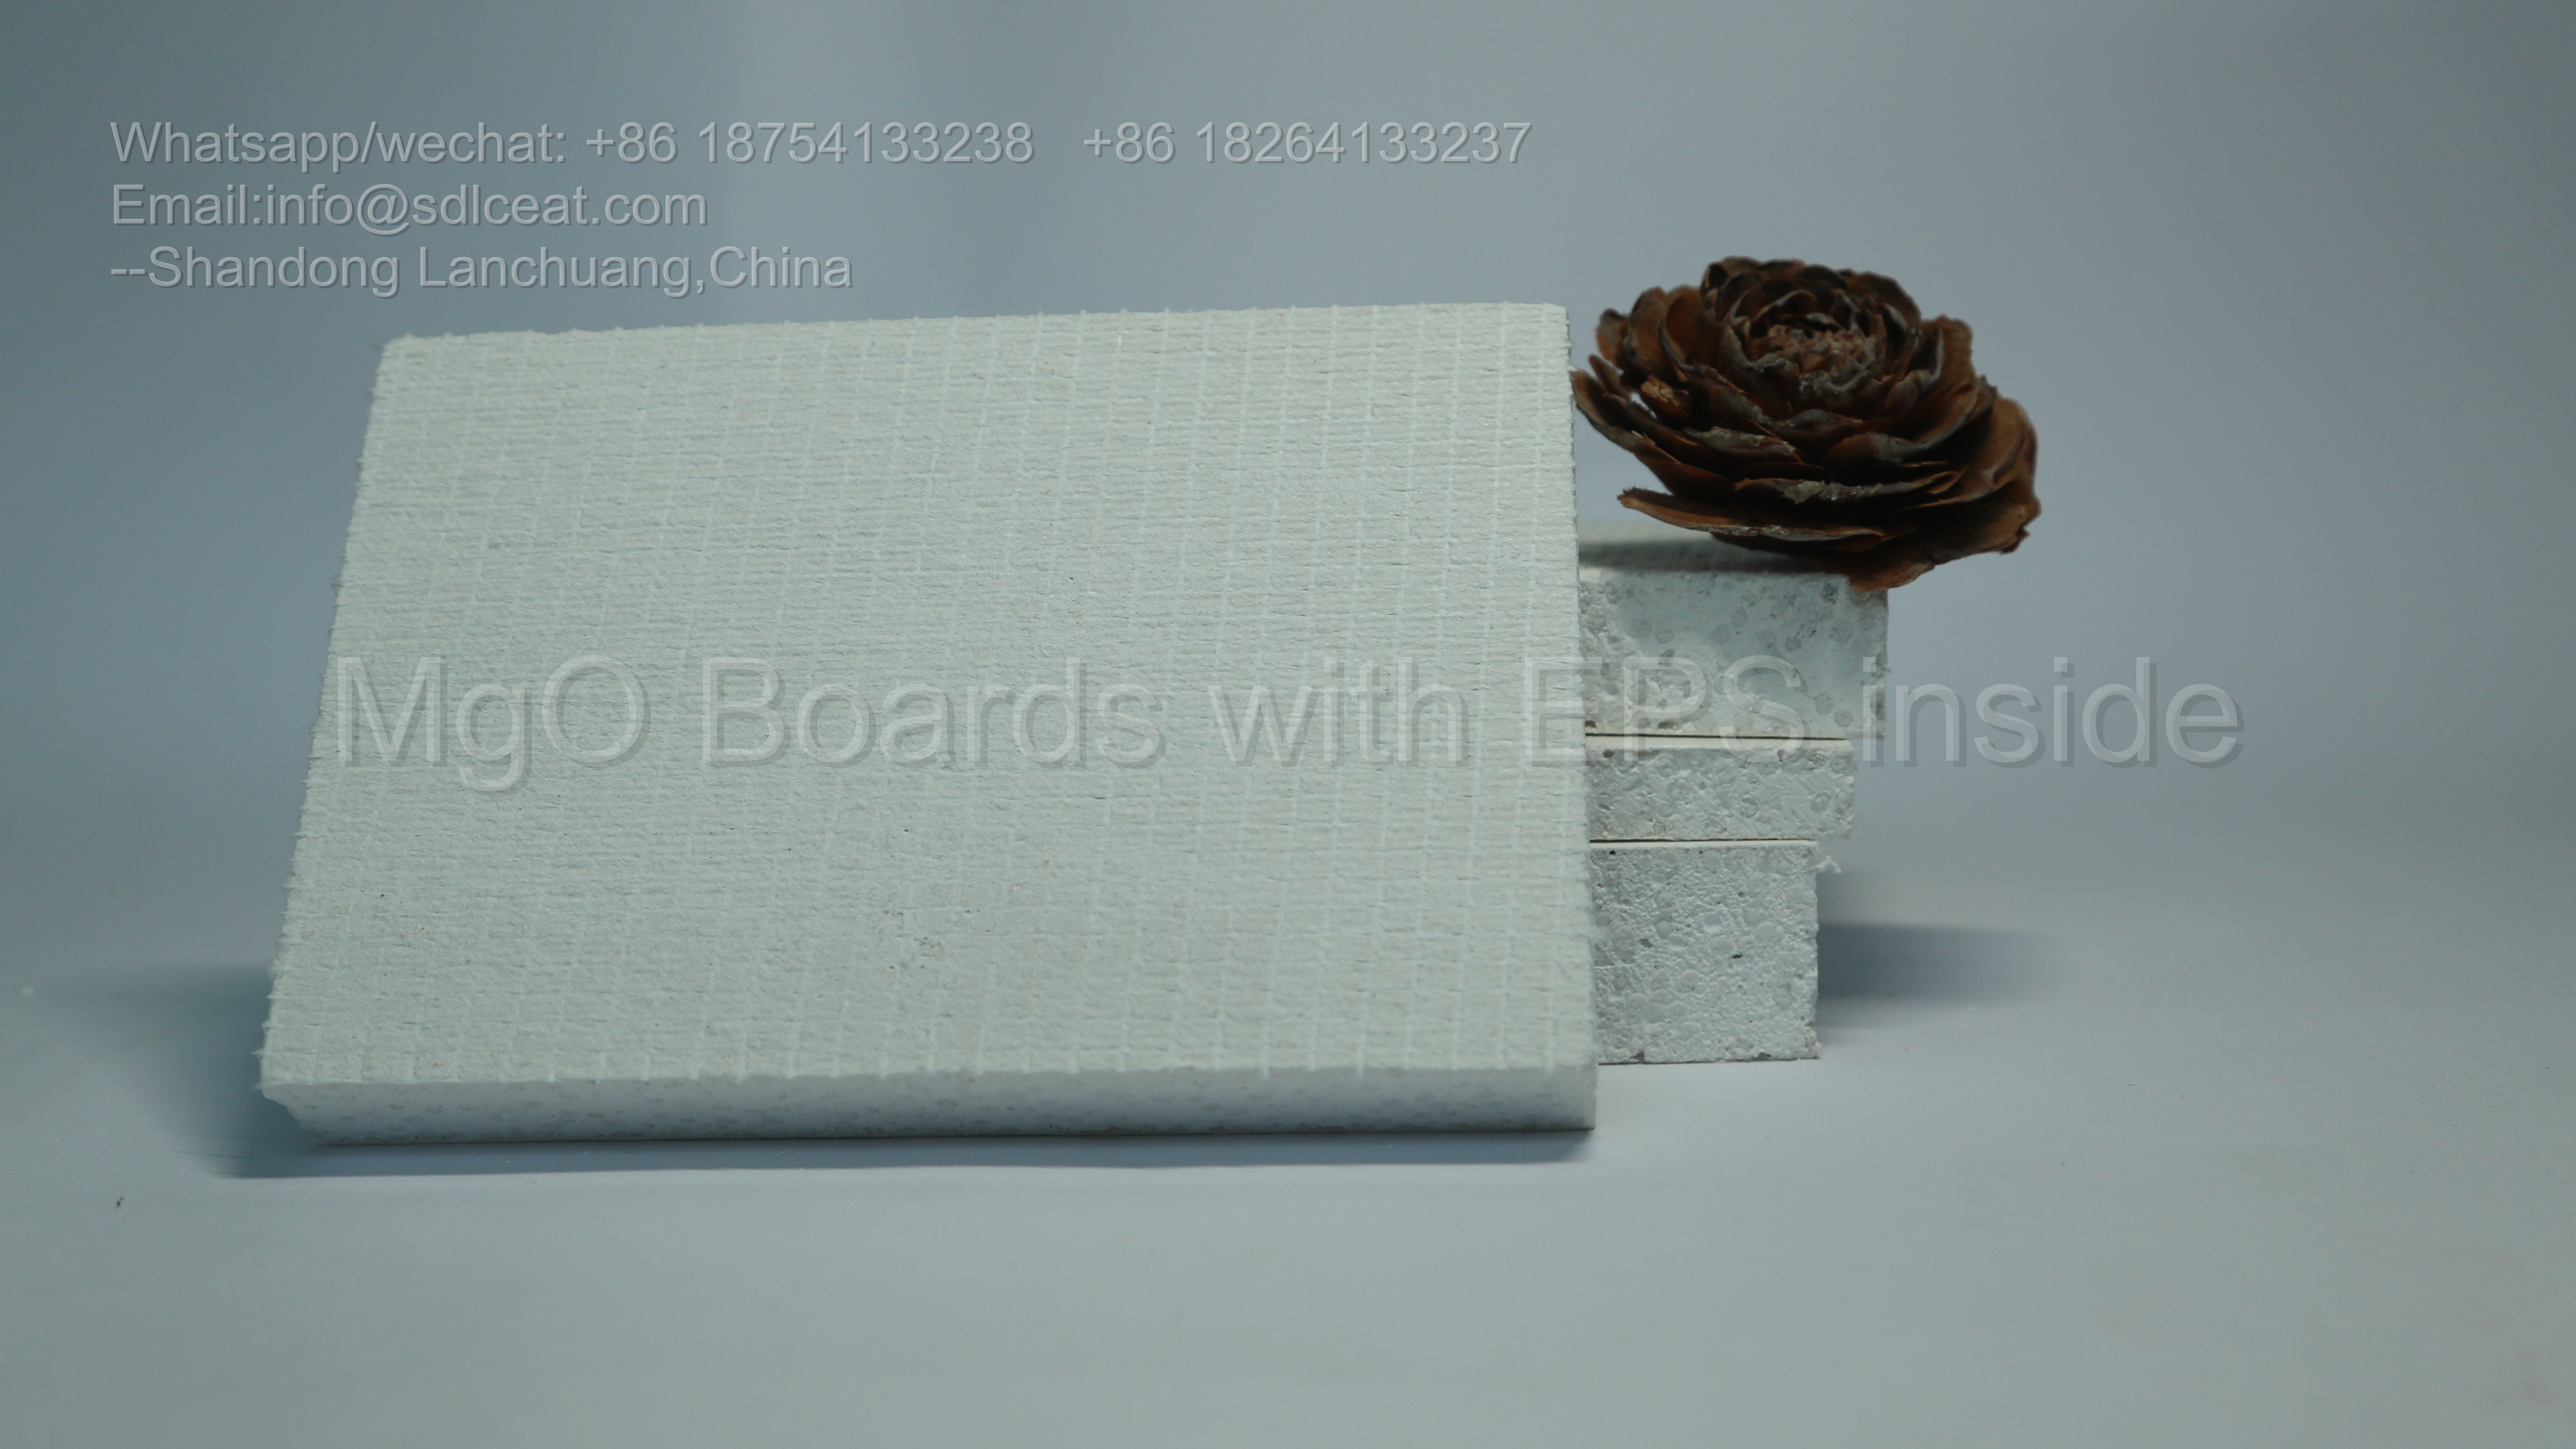 10mm thickness soffit mgo exterior wall boards